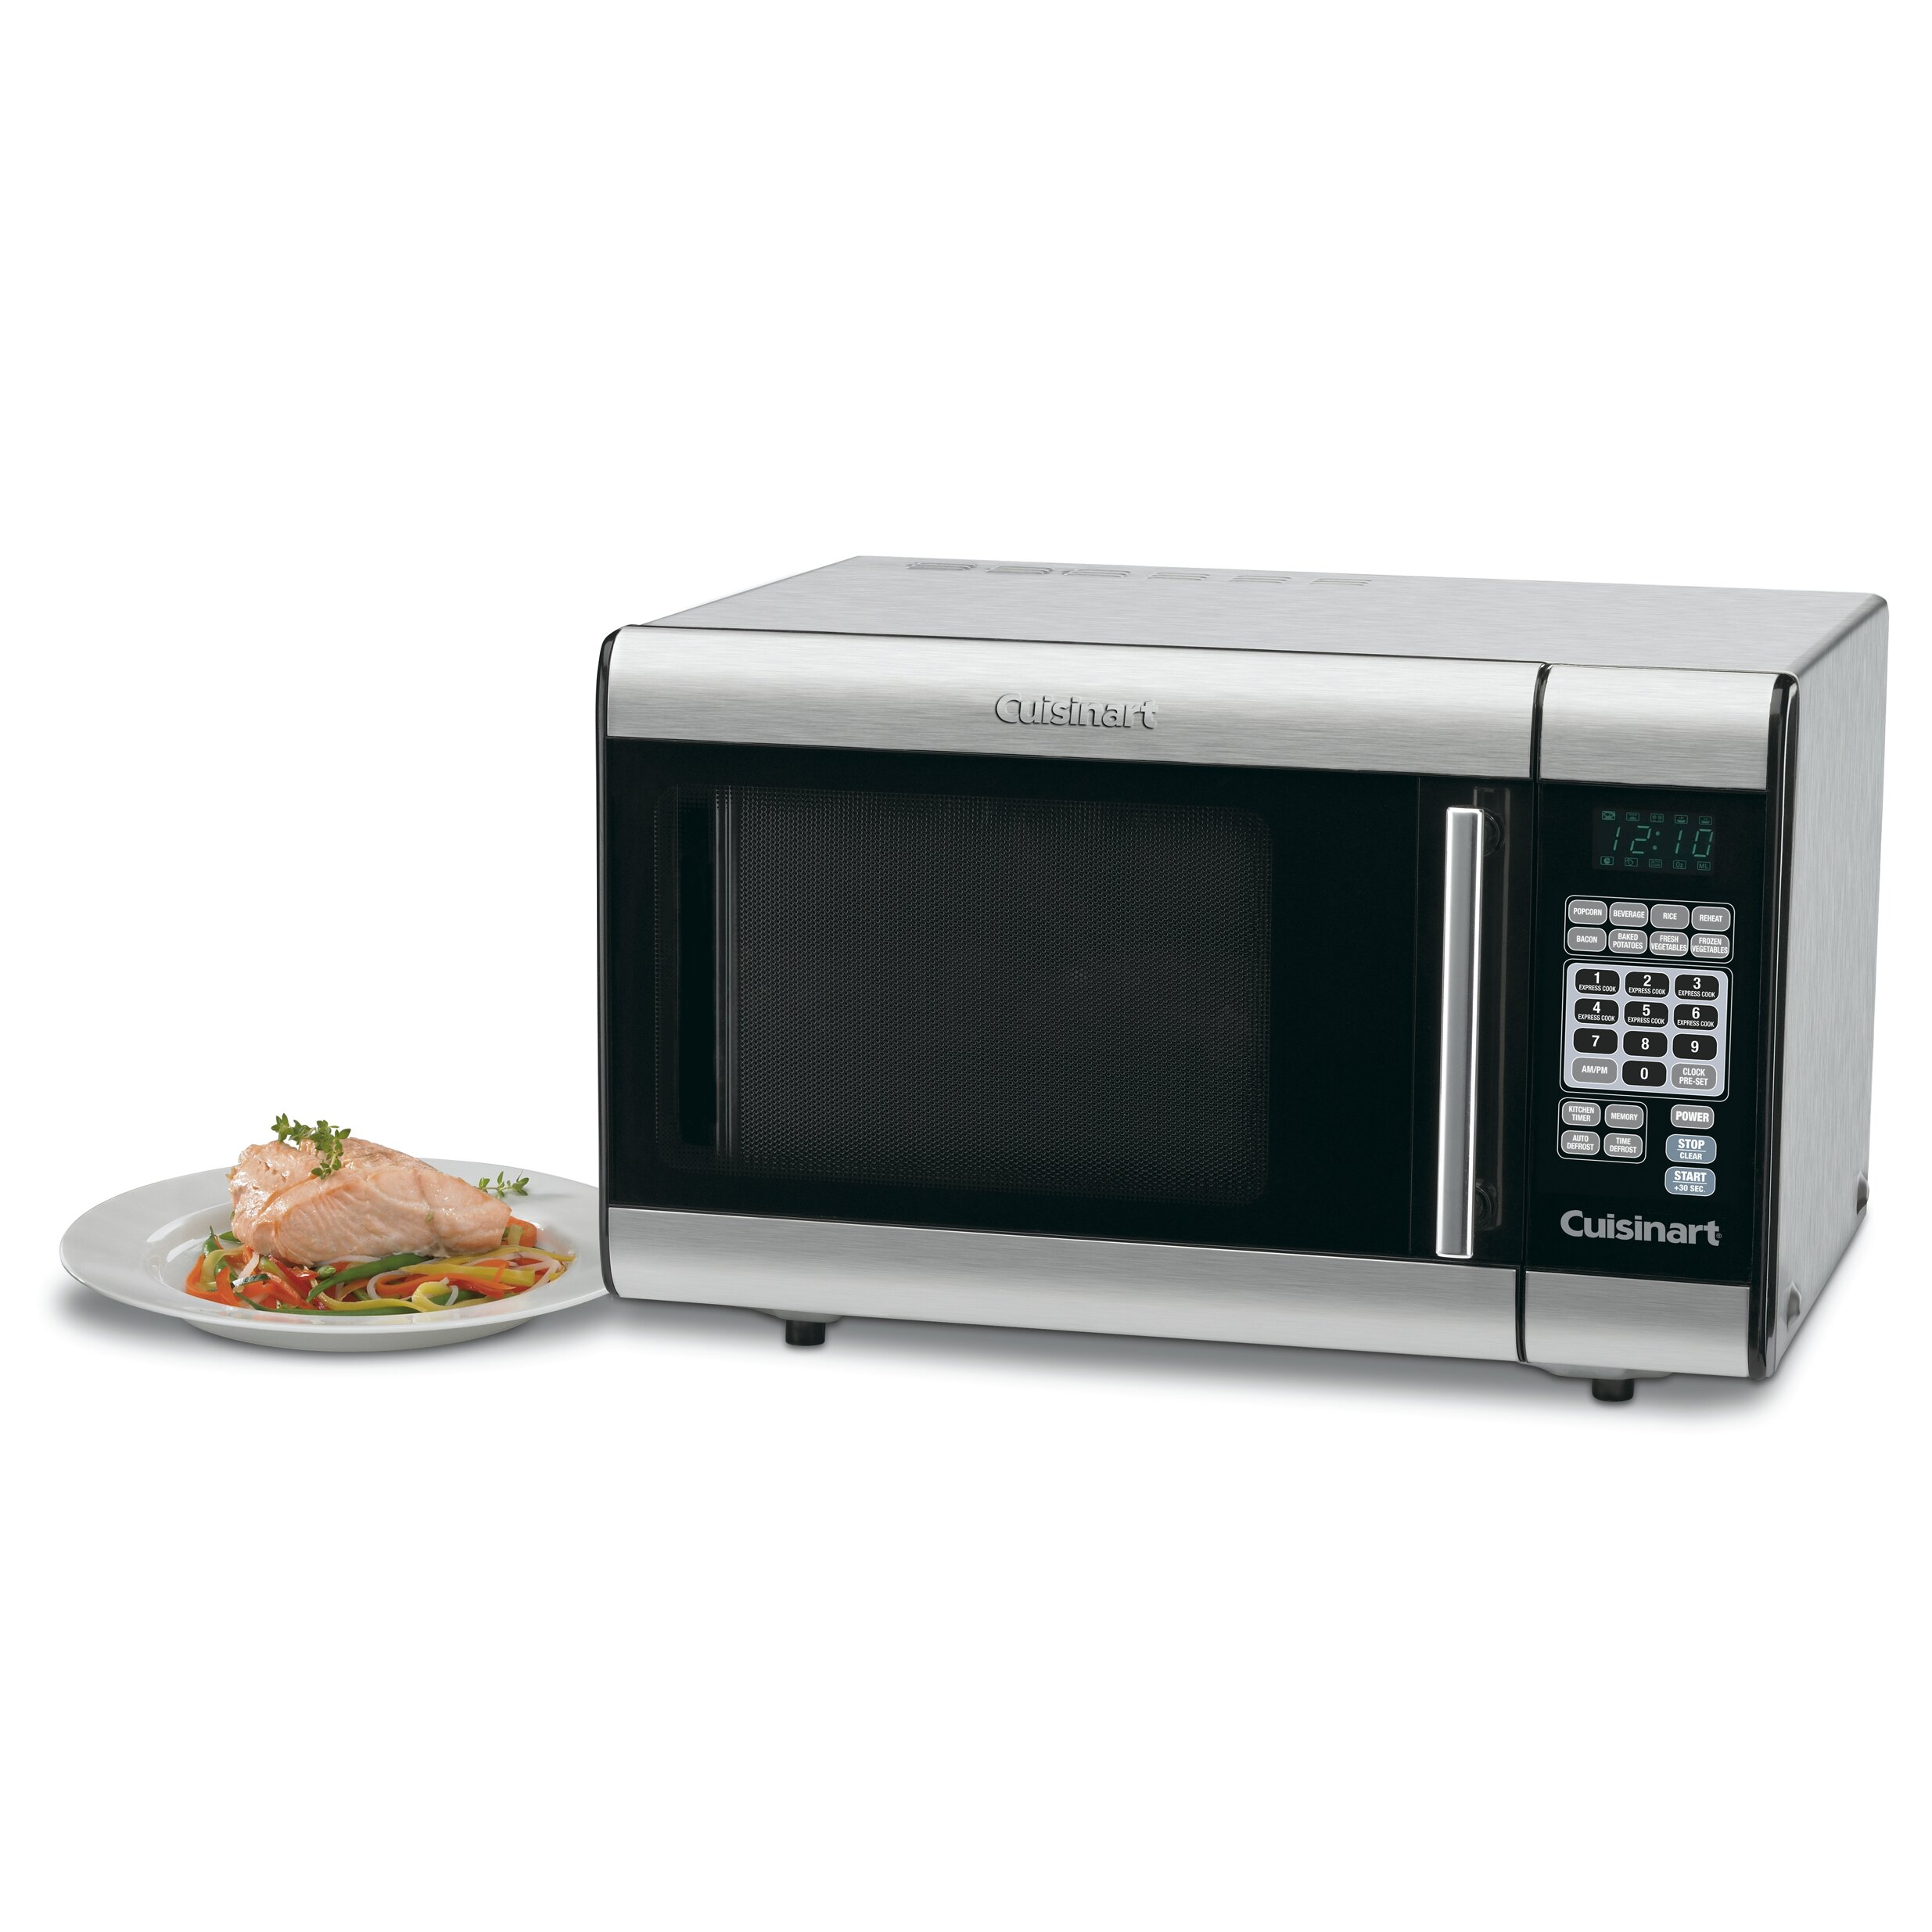 Countertop Microwave Sale Canada : ... 23.78